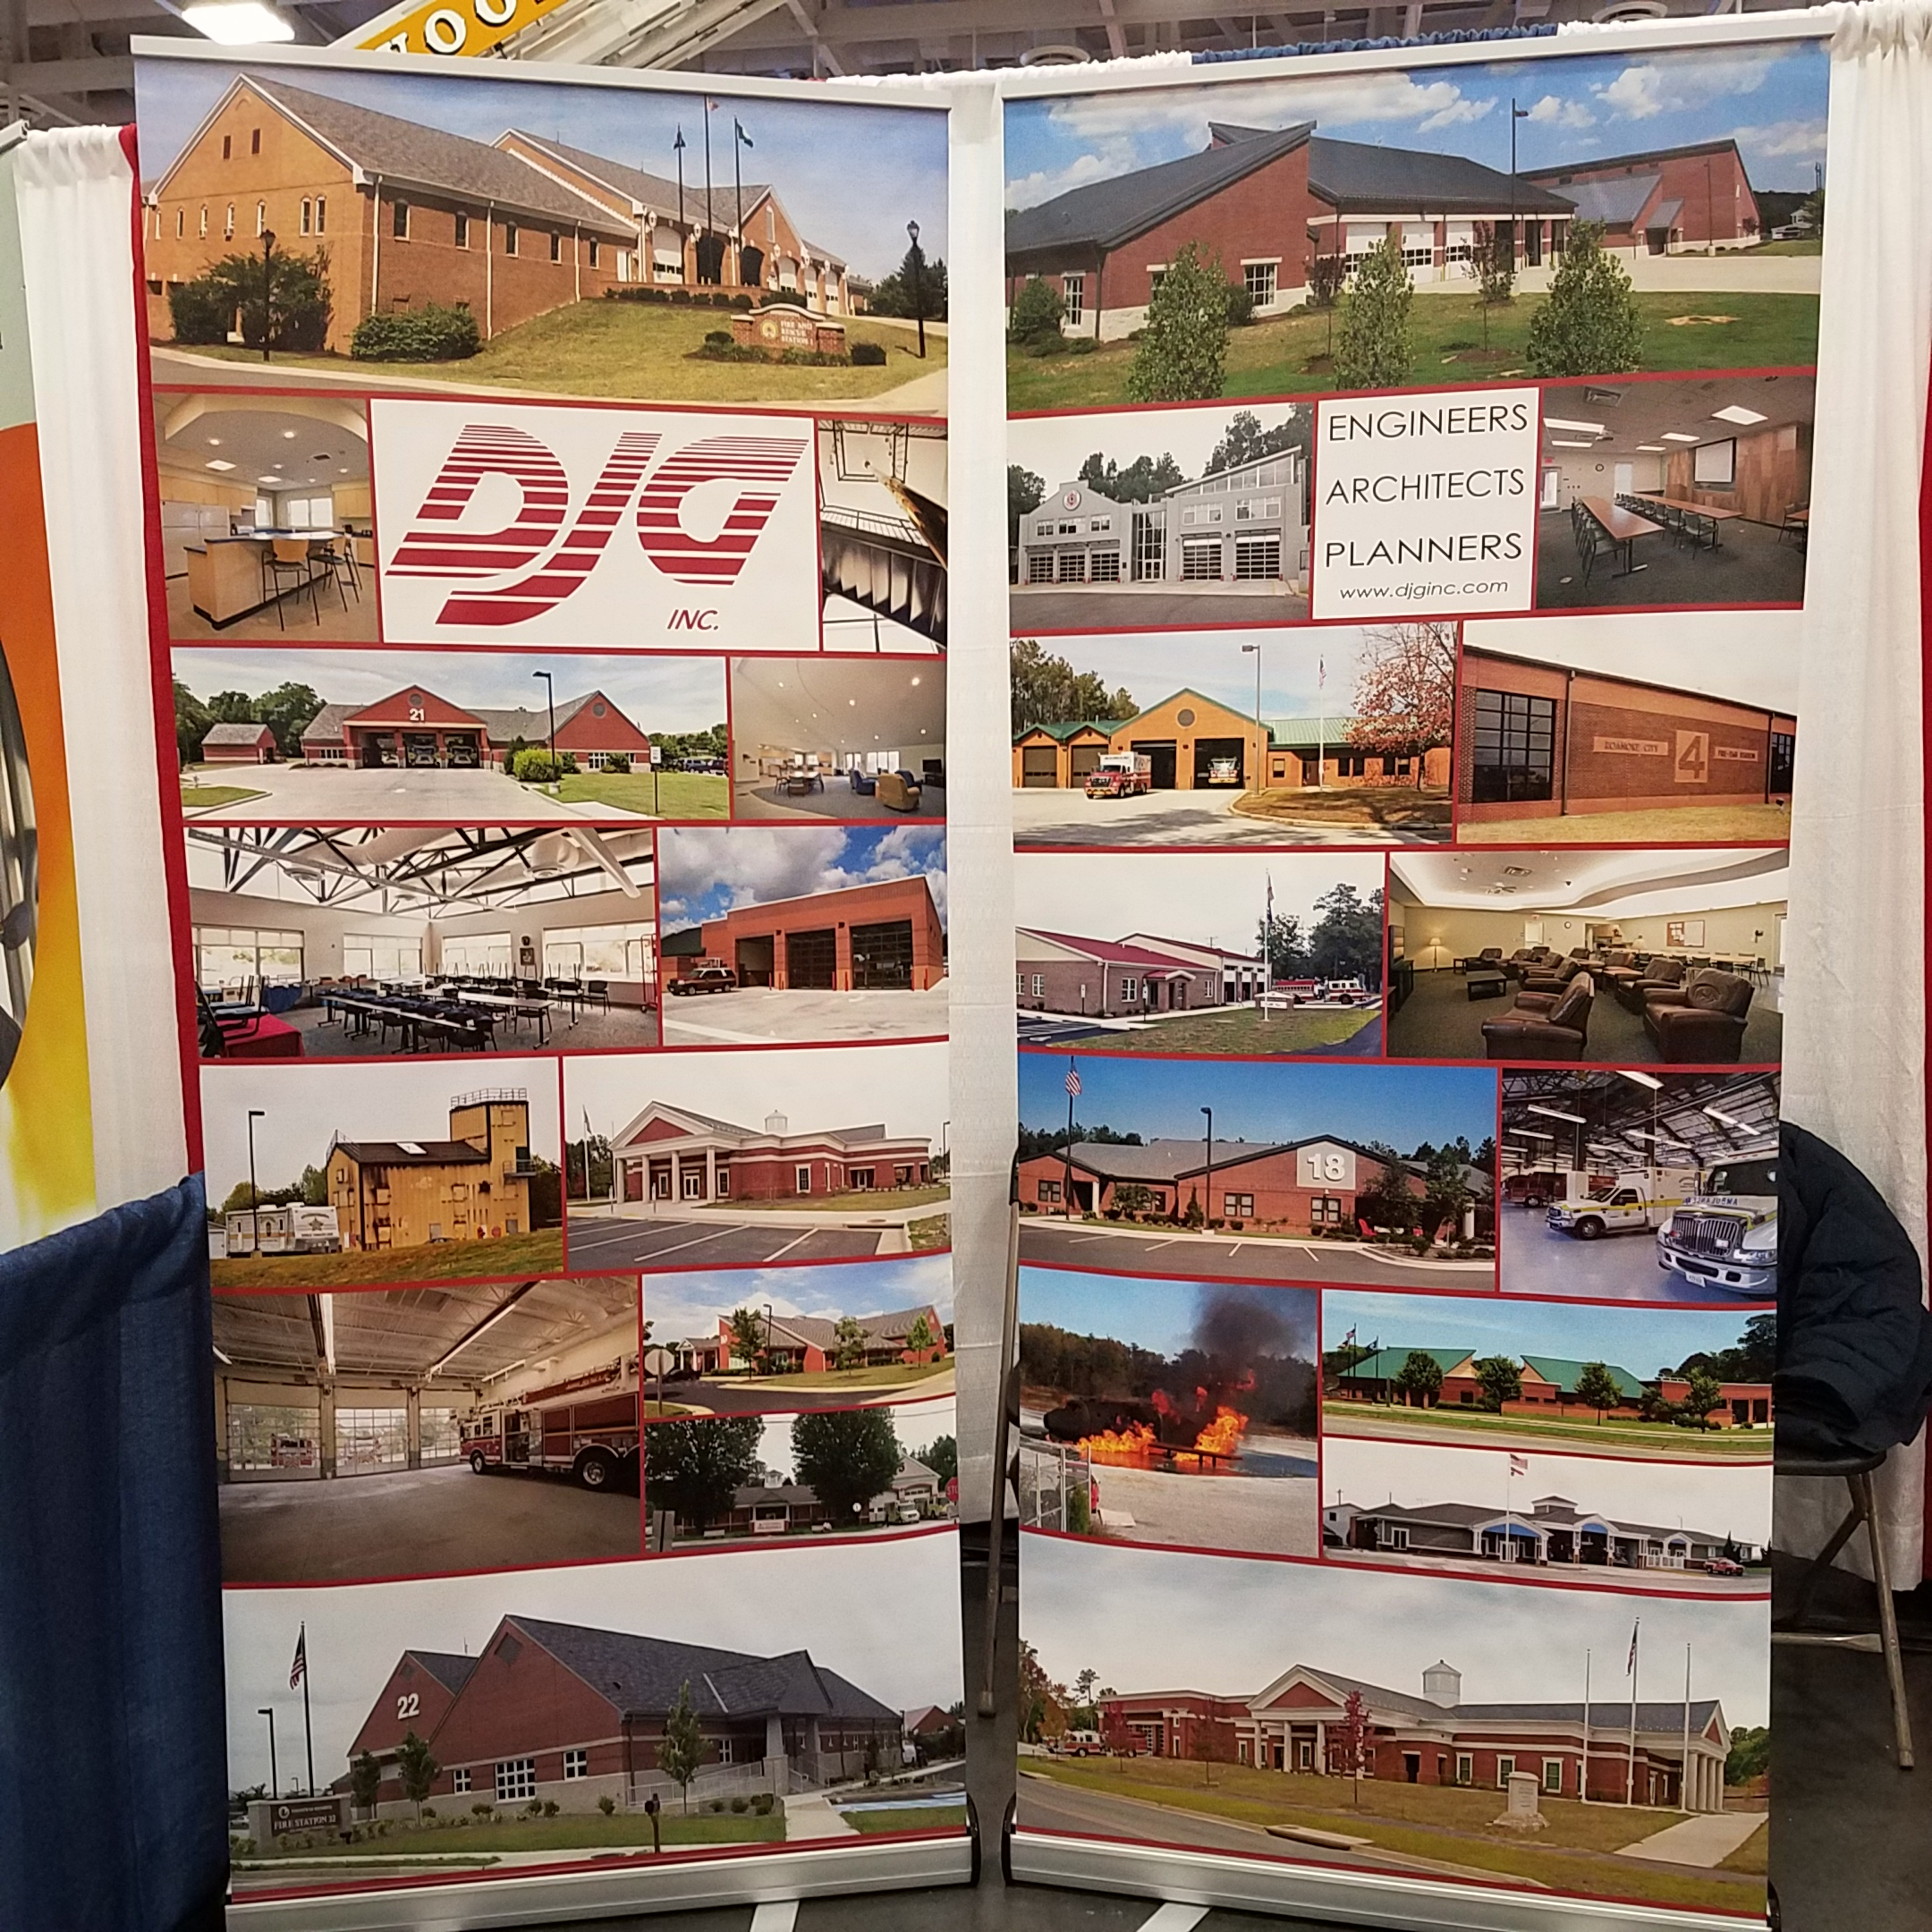 DJG retractable banners